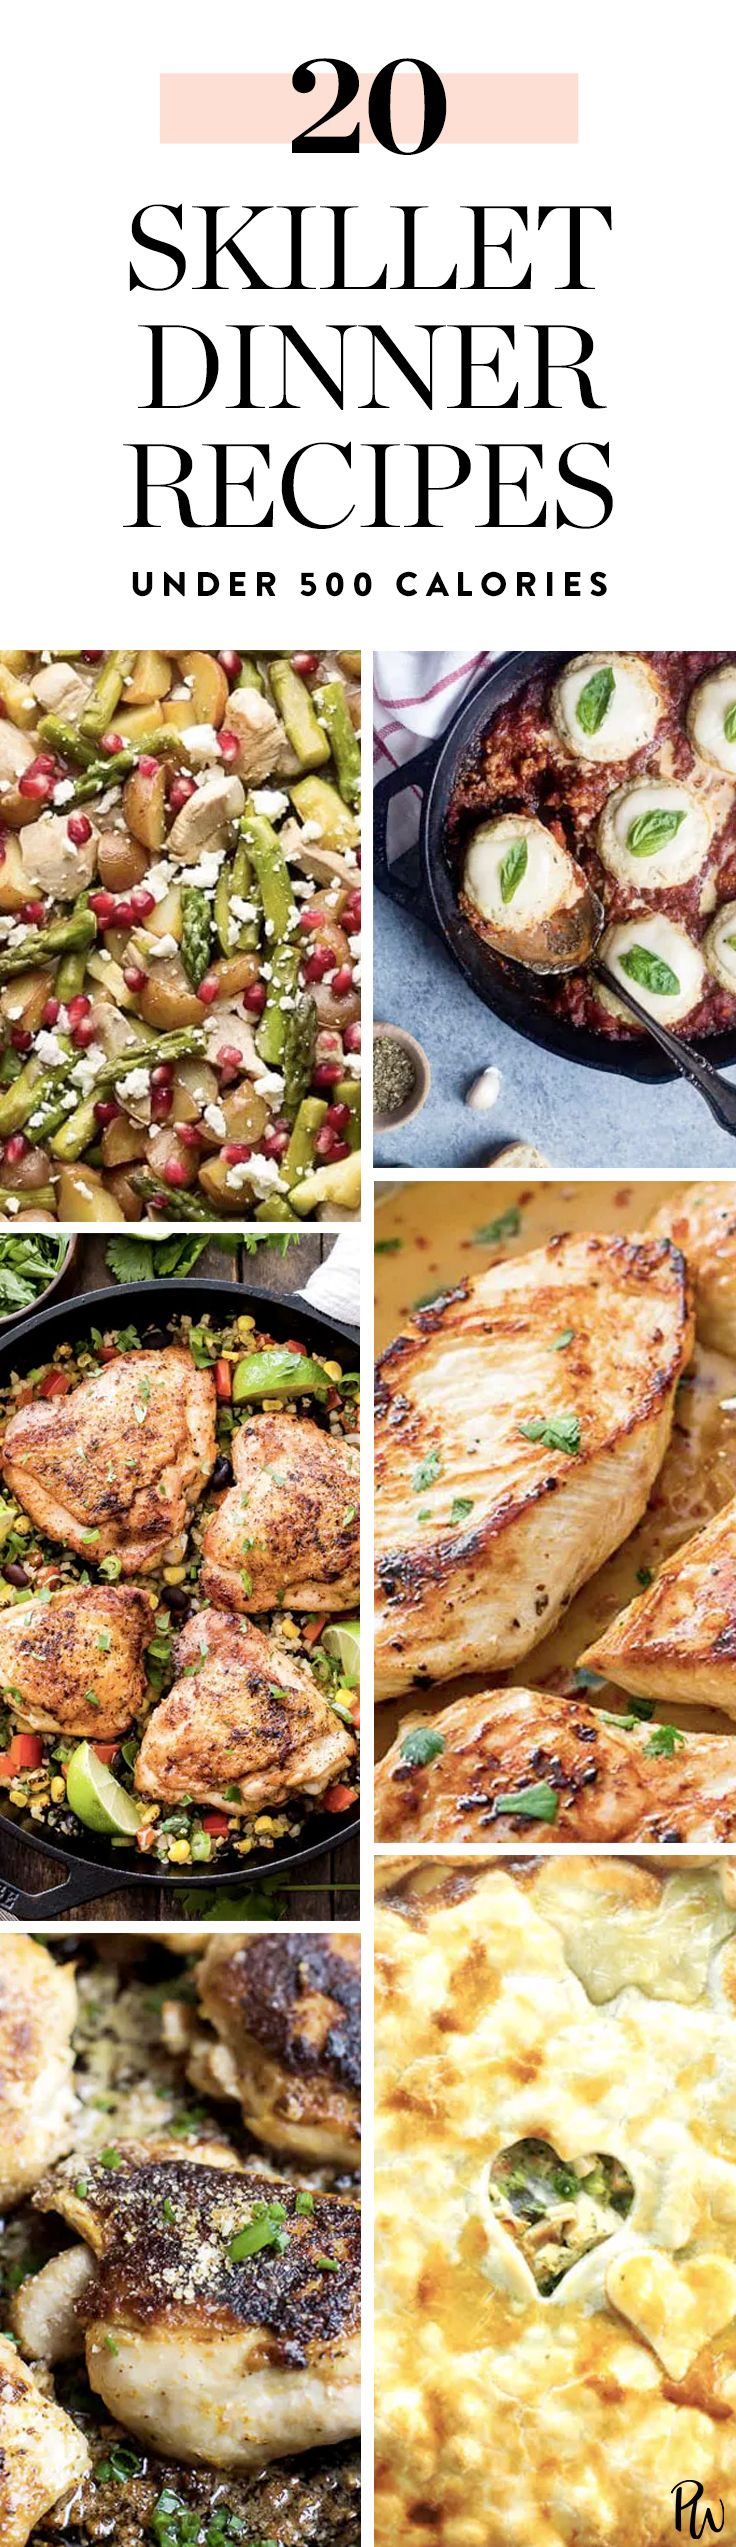 20 skillet dinner recipes under 500 calories comidas saludables 20 skillet dinner recipes under 500 calories comidas saludables saludable y comida forumfinder Image collections